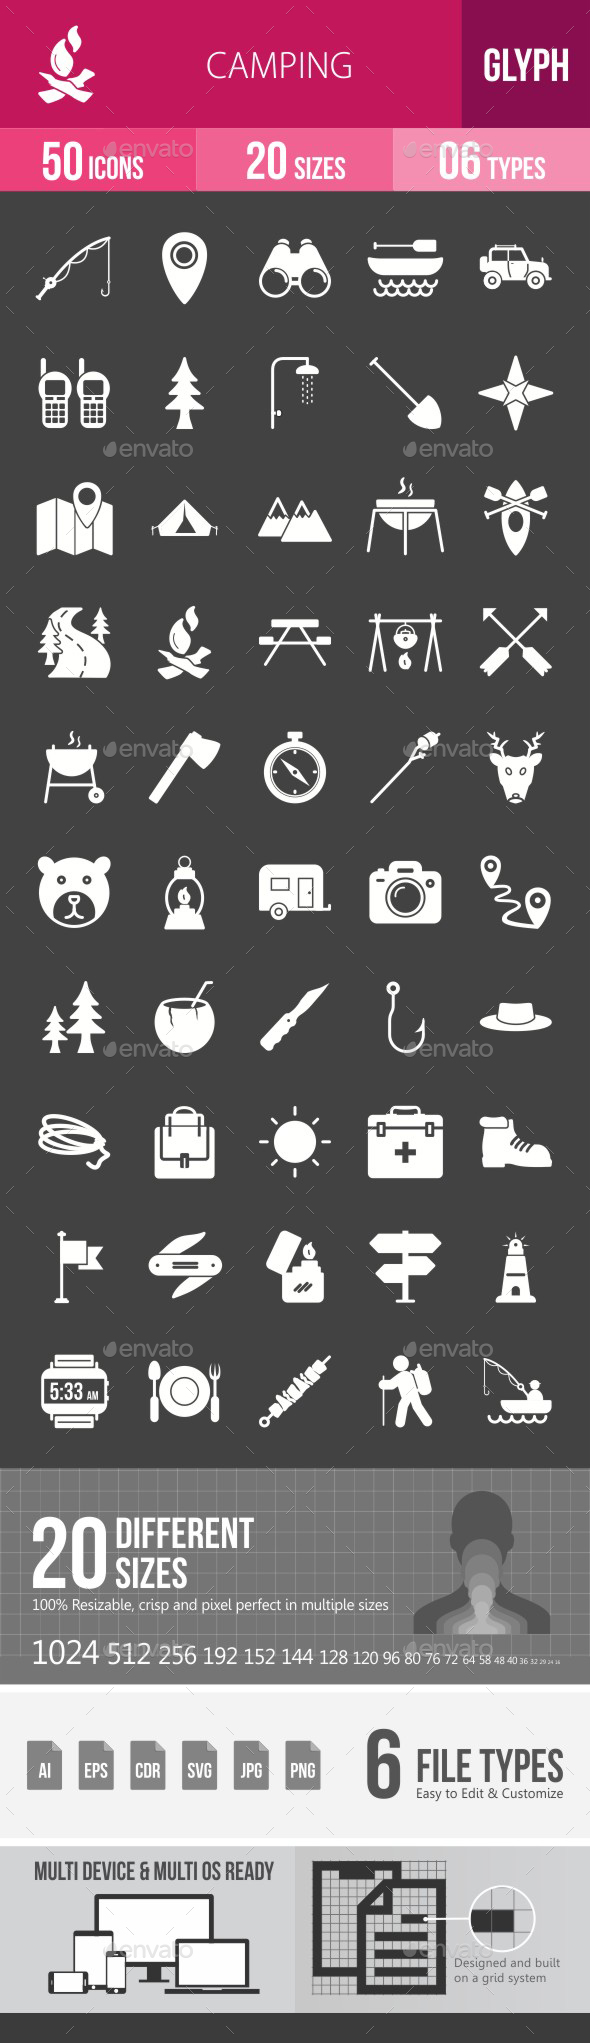 Camping Glyph Inverted Icons - Icons